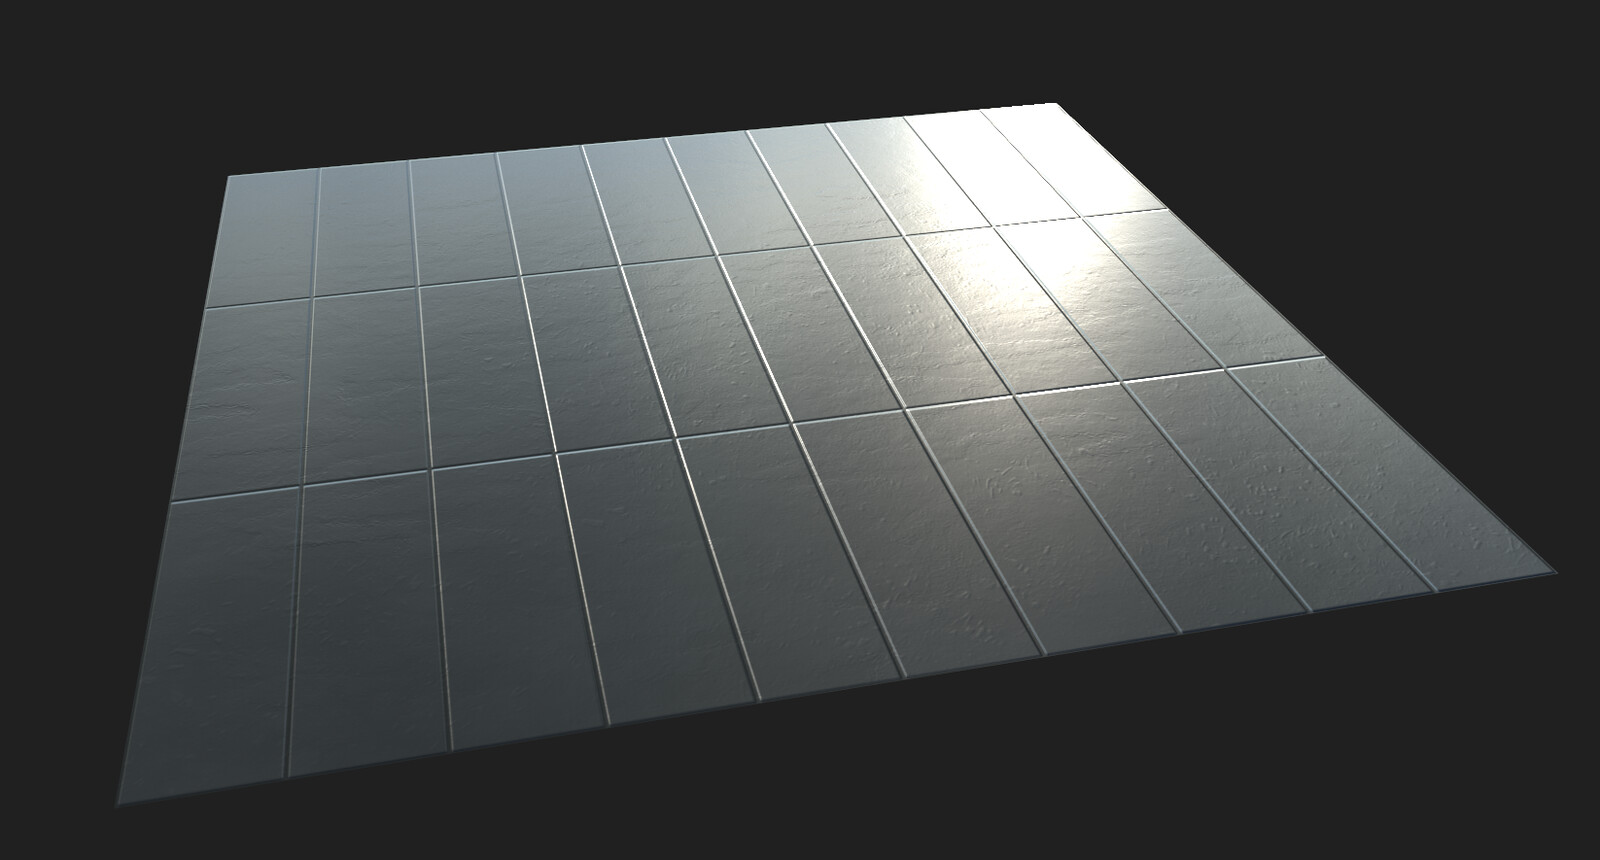 Roof tiling material